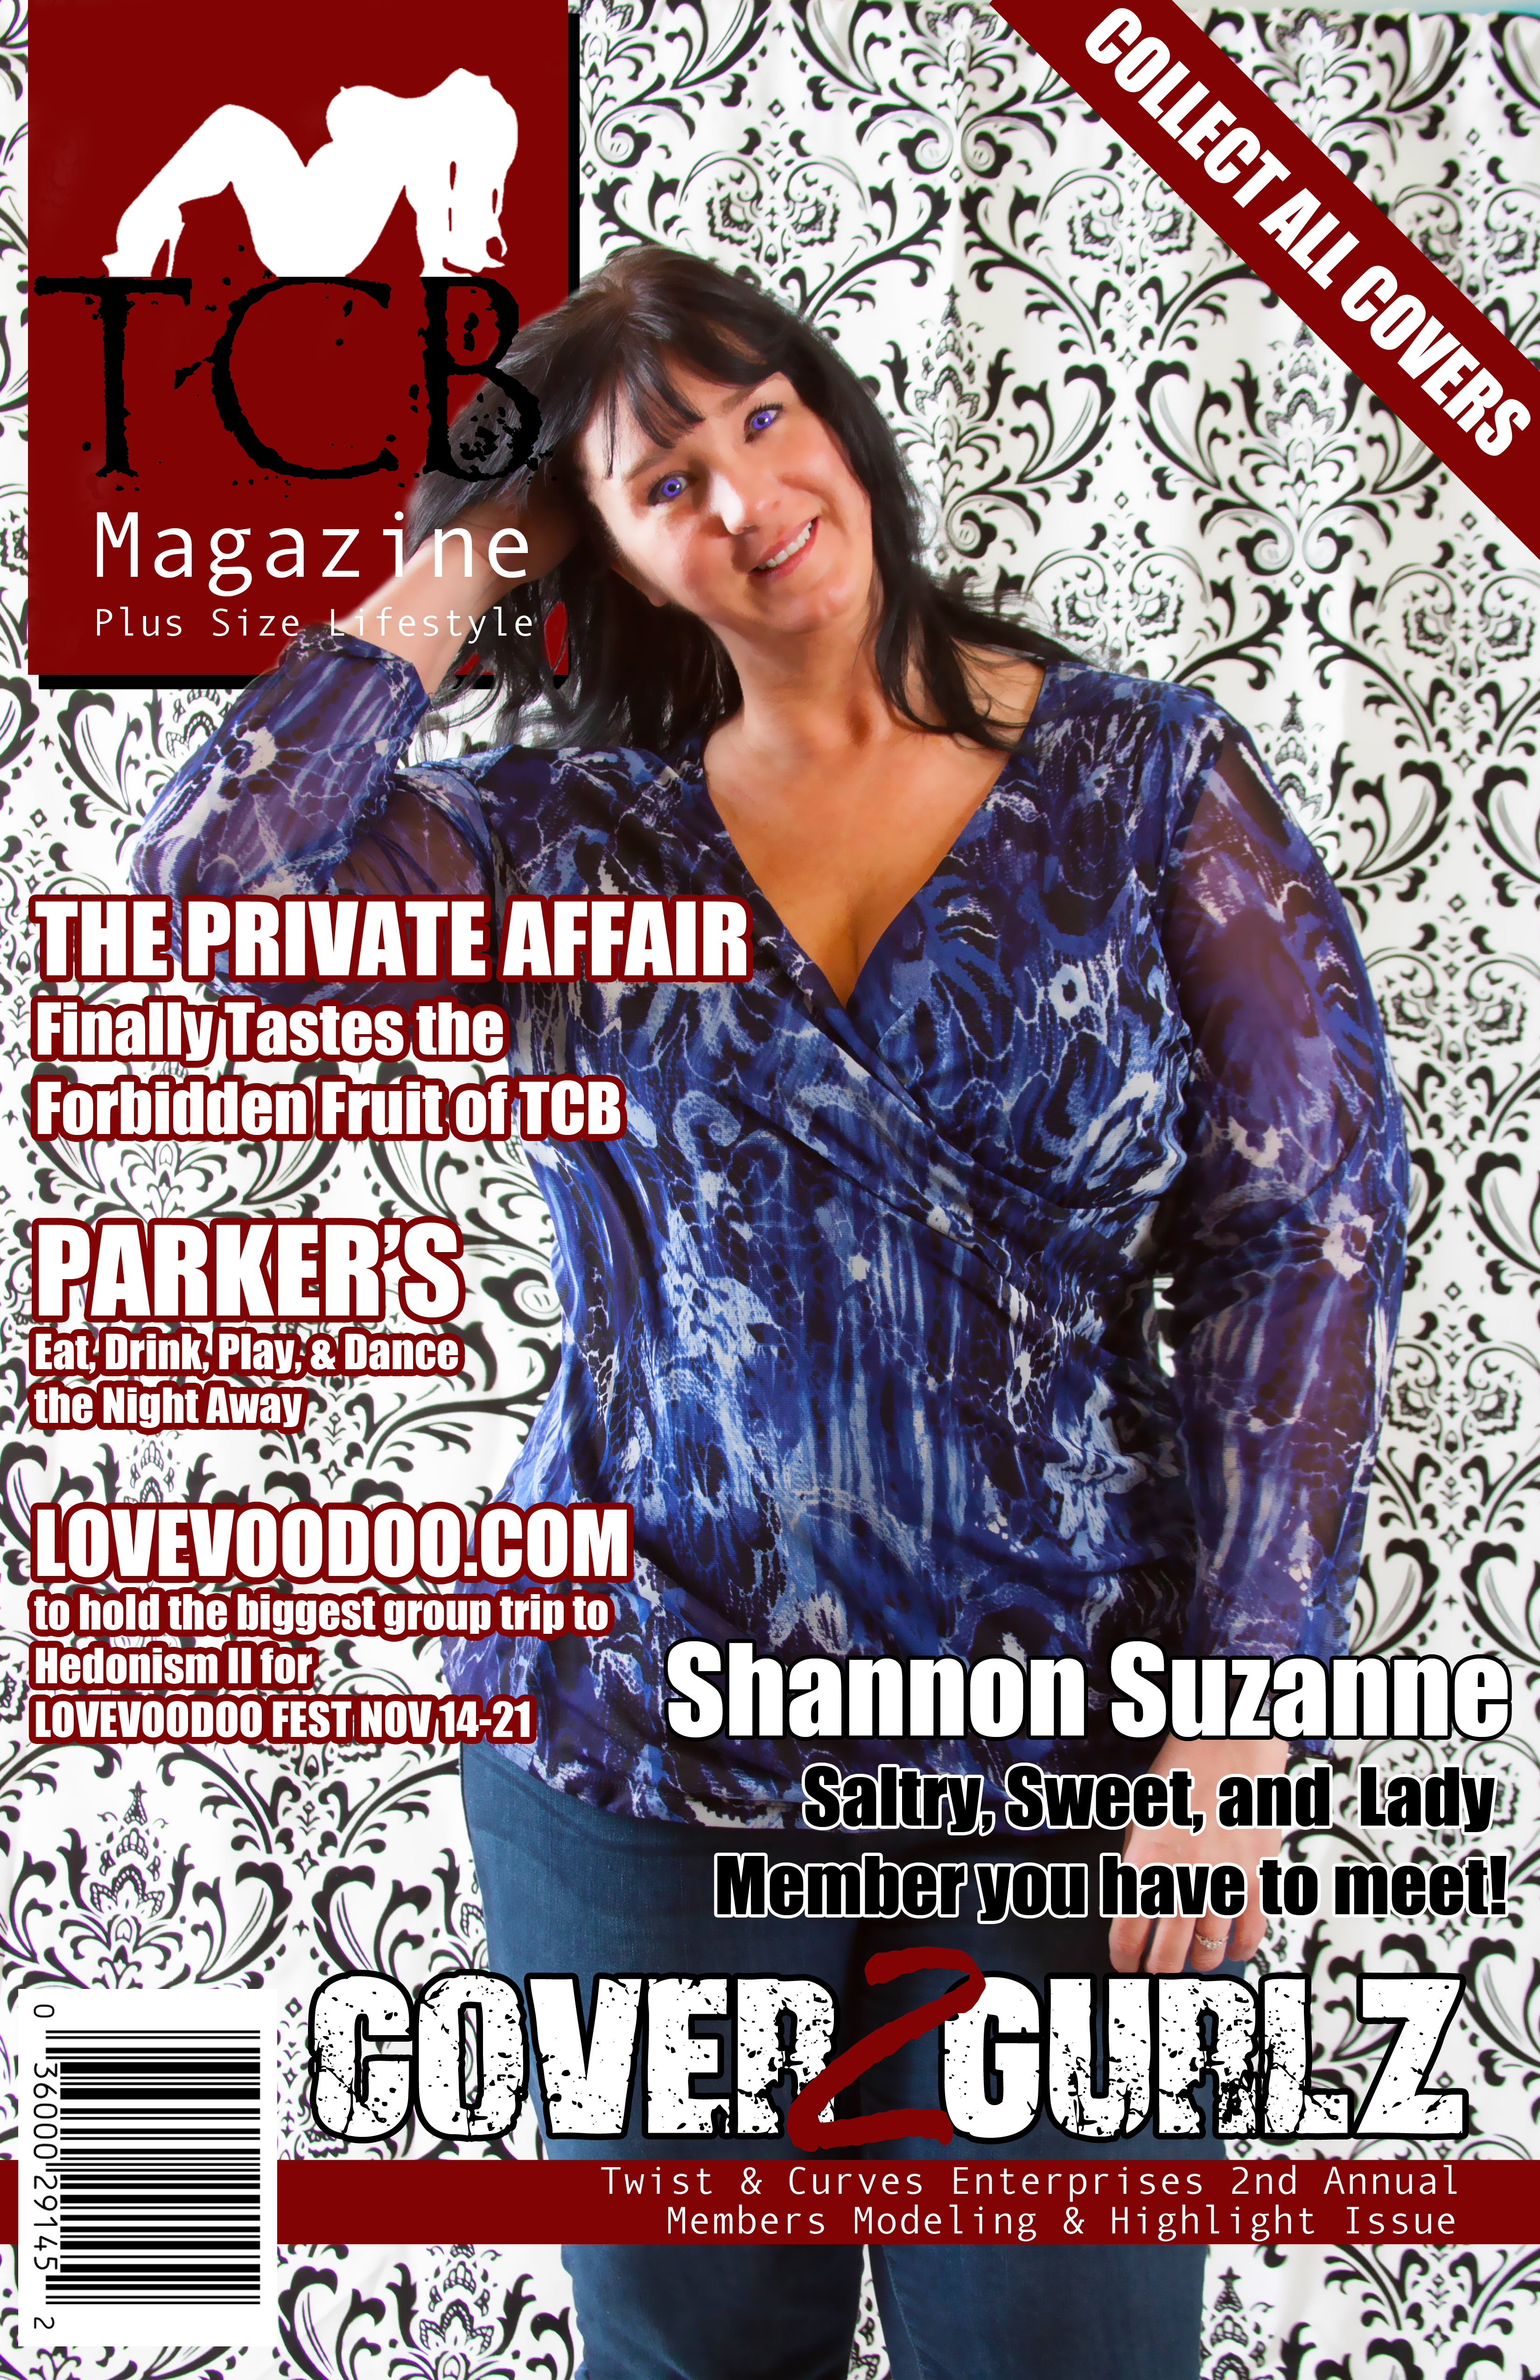 TCB MAGAZINE COVER - Shannon S